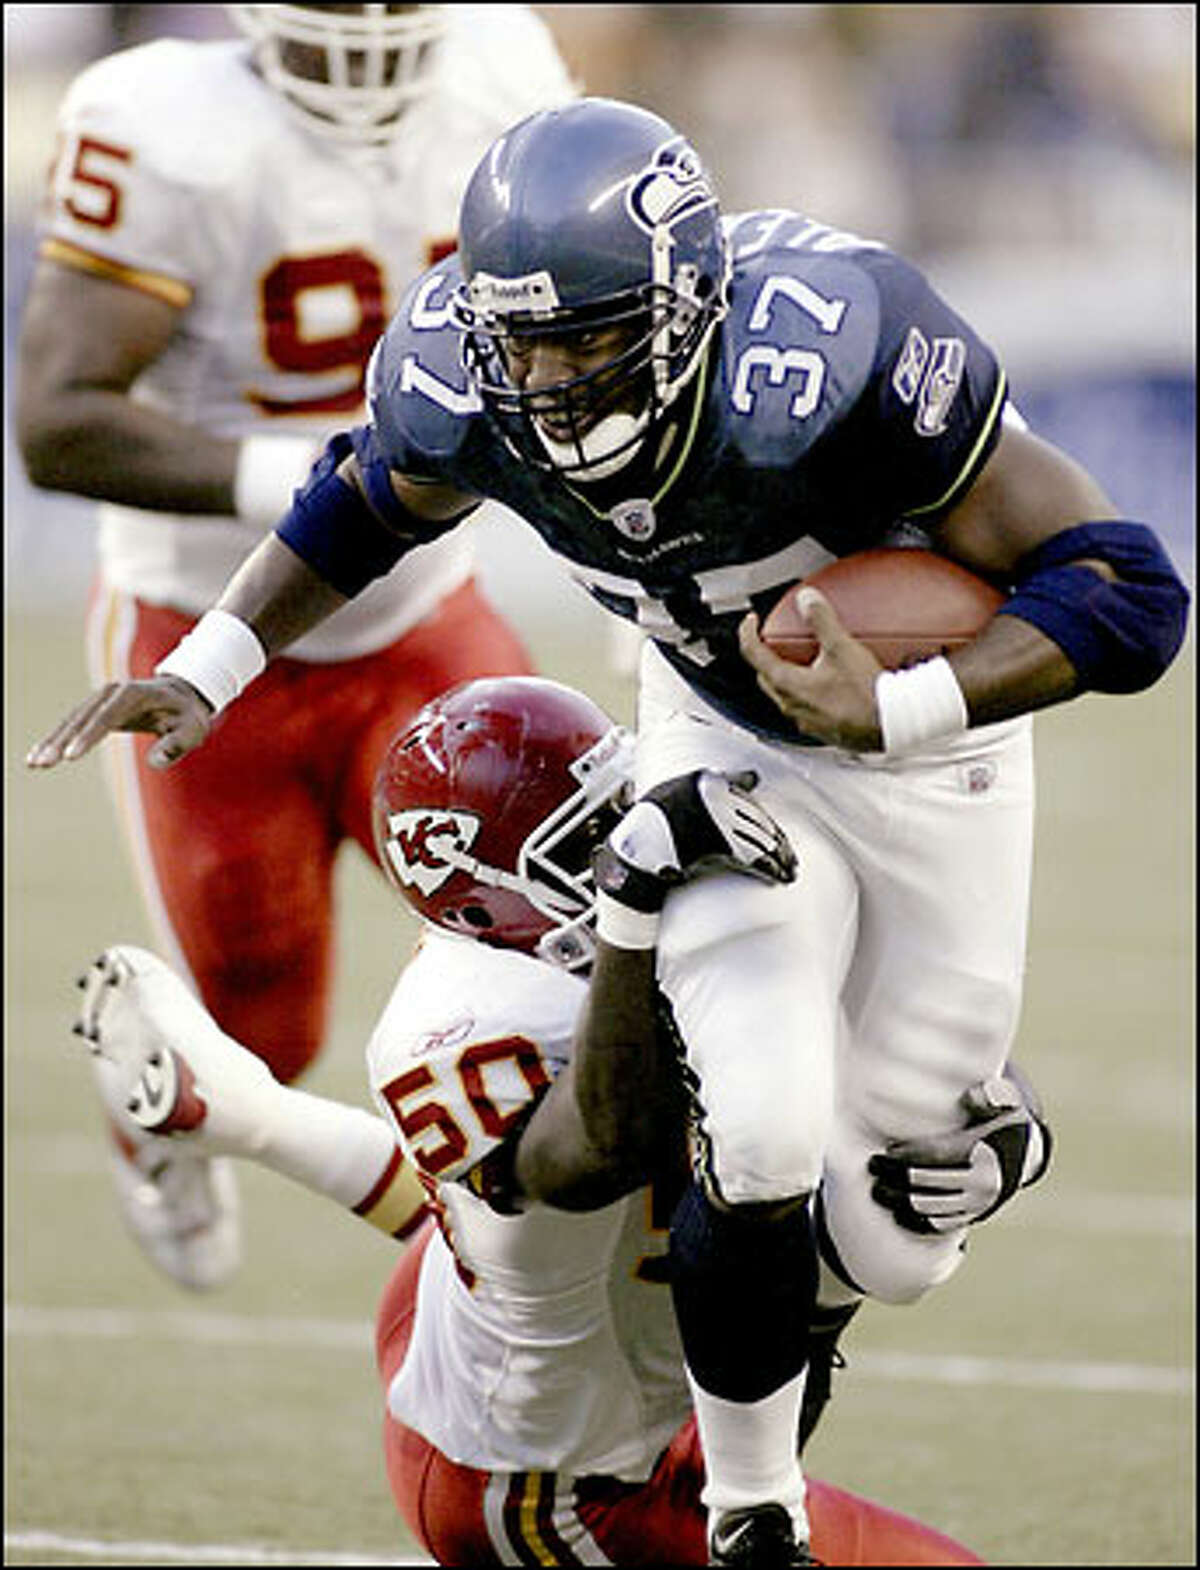 Shaun Alexander carries Chiefs linebacker Larry Atkins for extra yards during the Aug. 24 game at Seahawks Stadium.